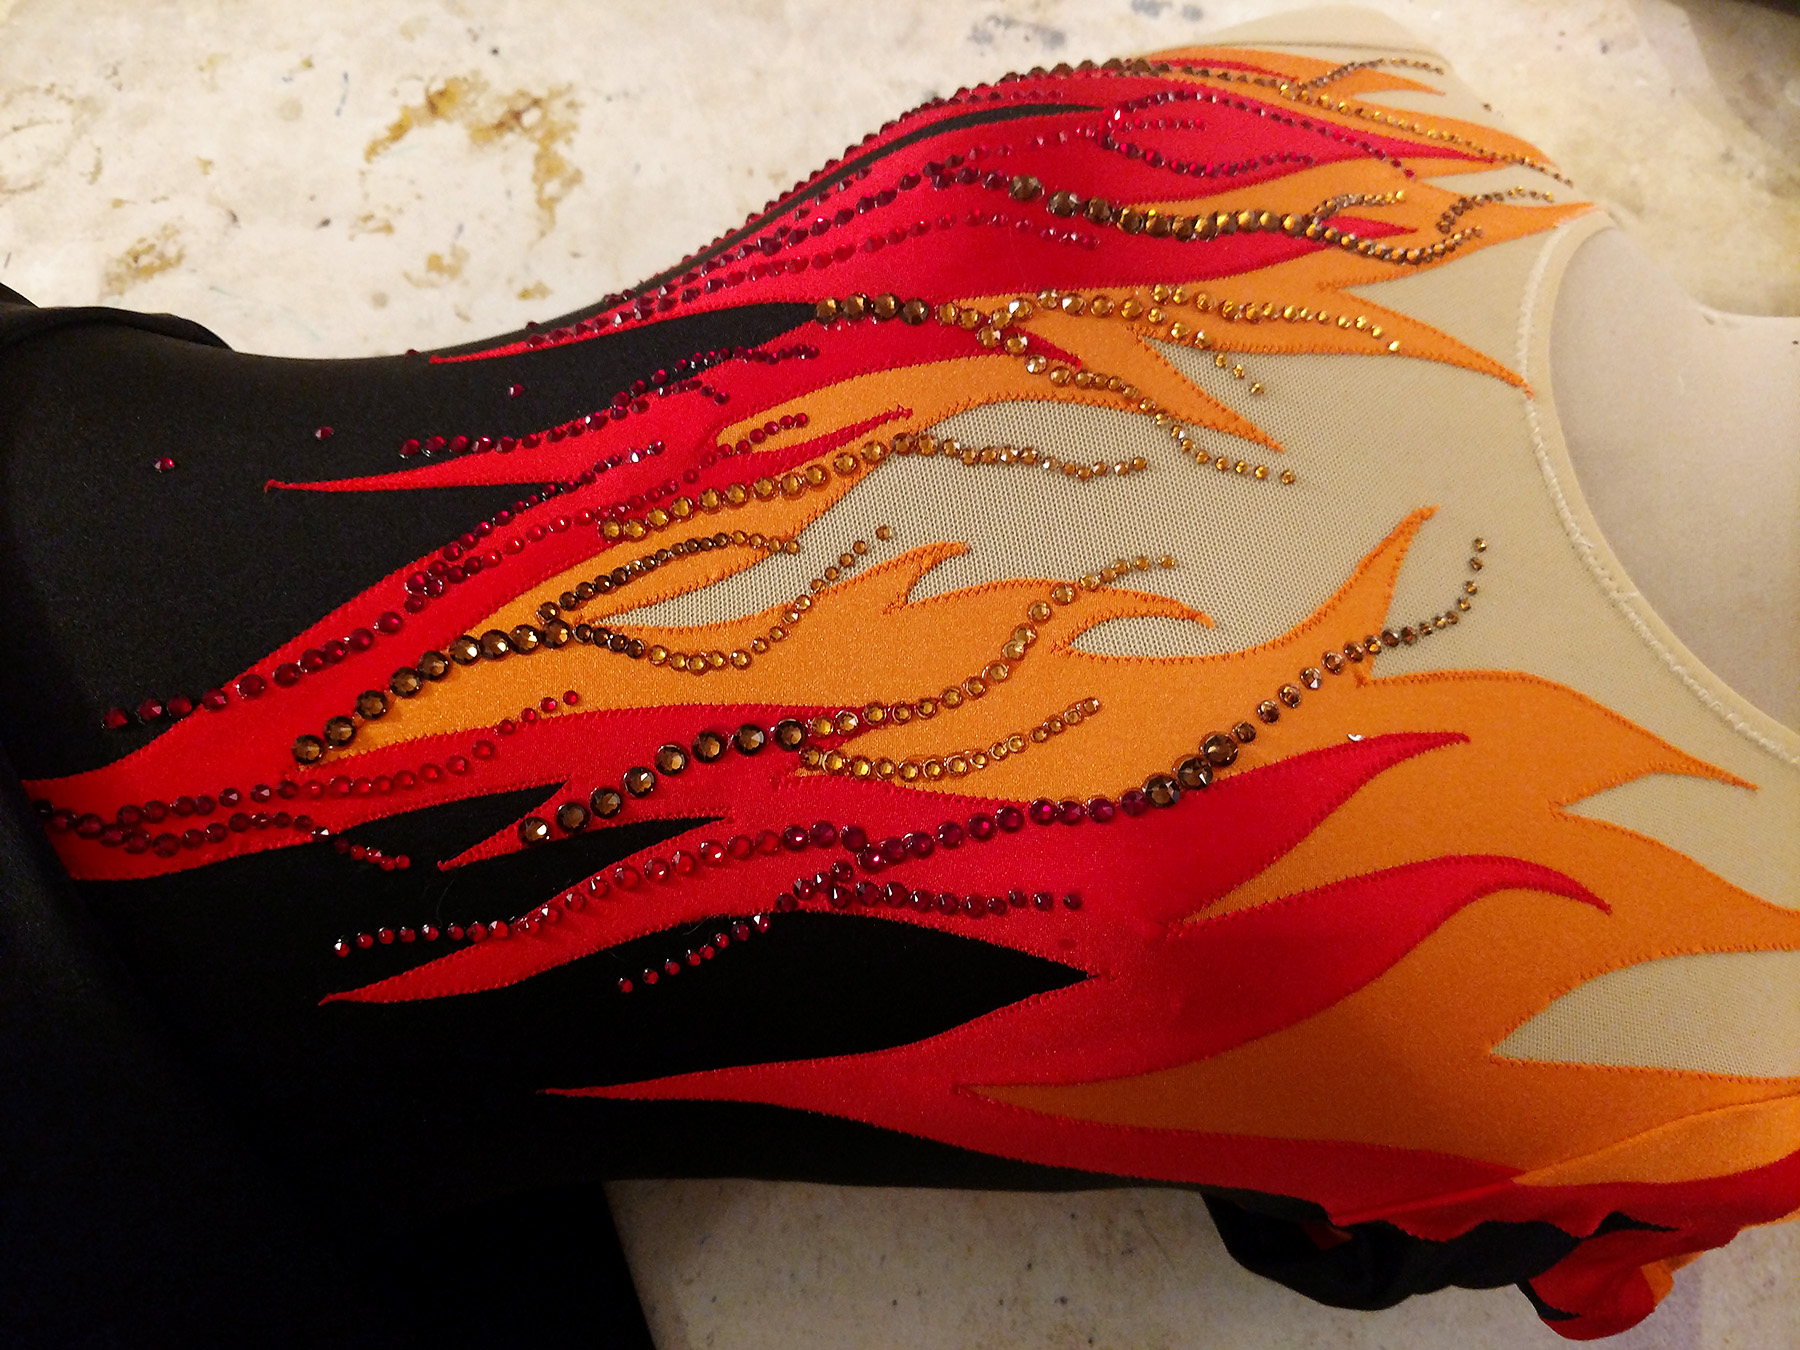 A close up view of the flames dress on a dress form, with red and orange crystals applied to it.